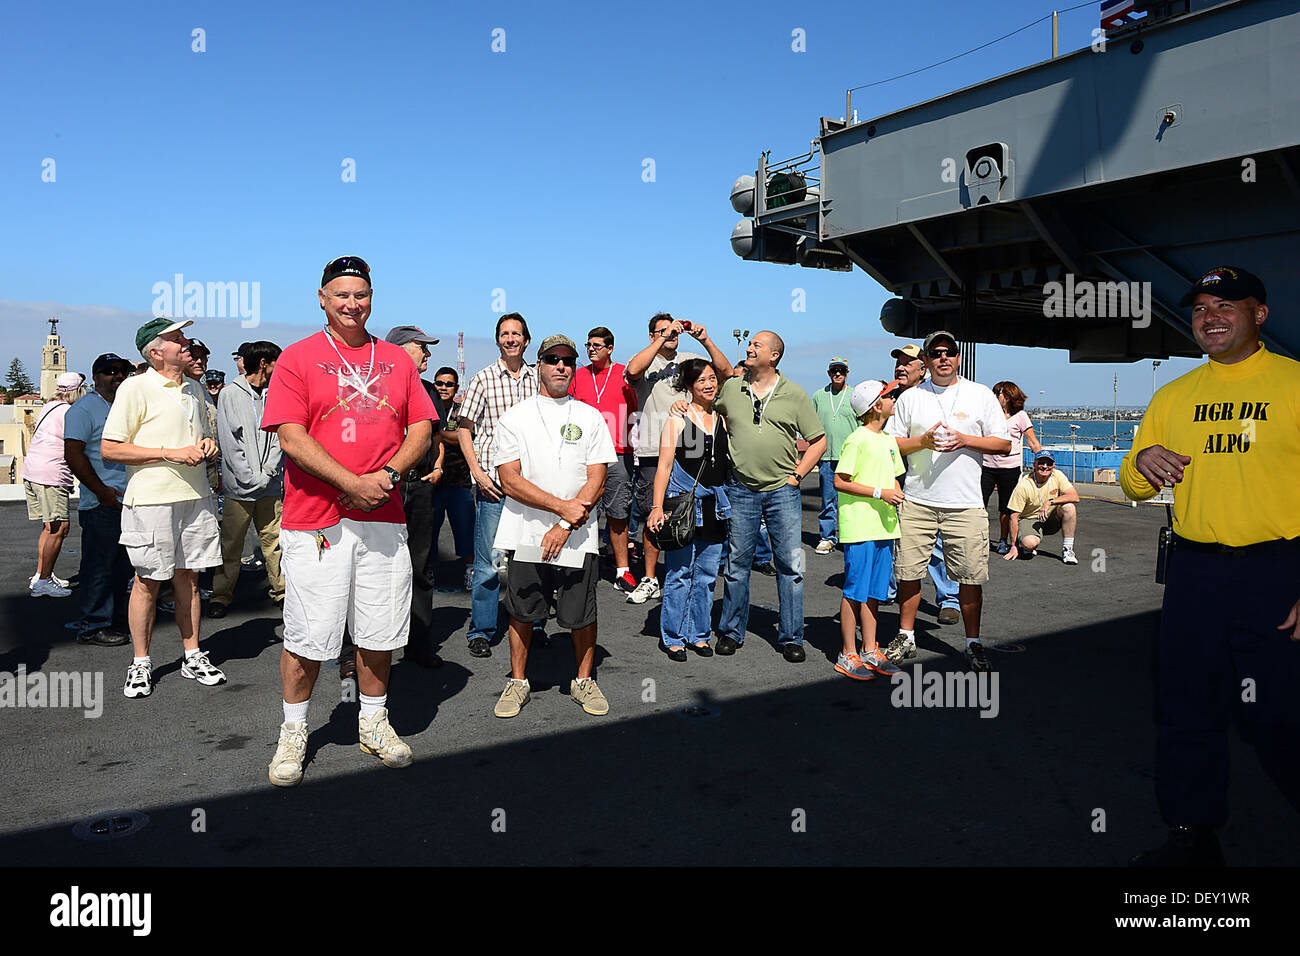 "Guests ride an aircraft elevator to the flight deck aboard the aircraft carrier USS Ronald Reagan (CVN 76) during a tour. Ronald Reagan, ""America's Flagship,"" is participating in the annual Coronado Speed Festival. This event was created in 1997, to honor - Stock Image"